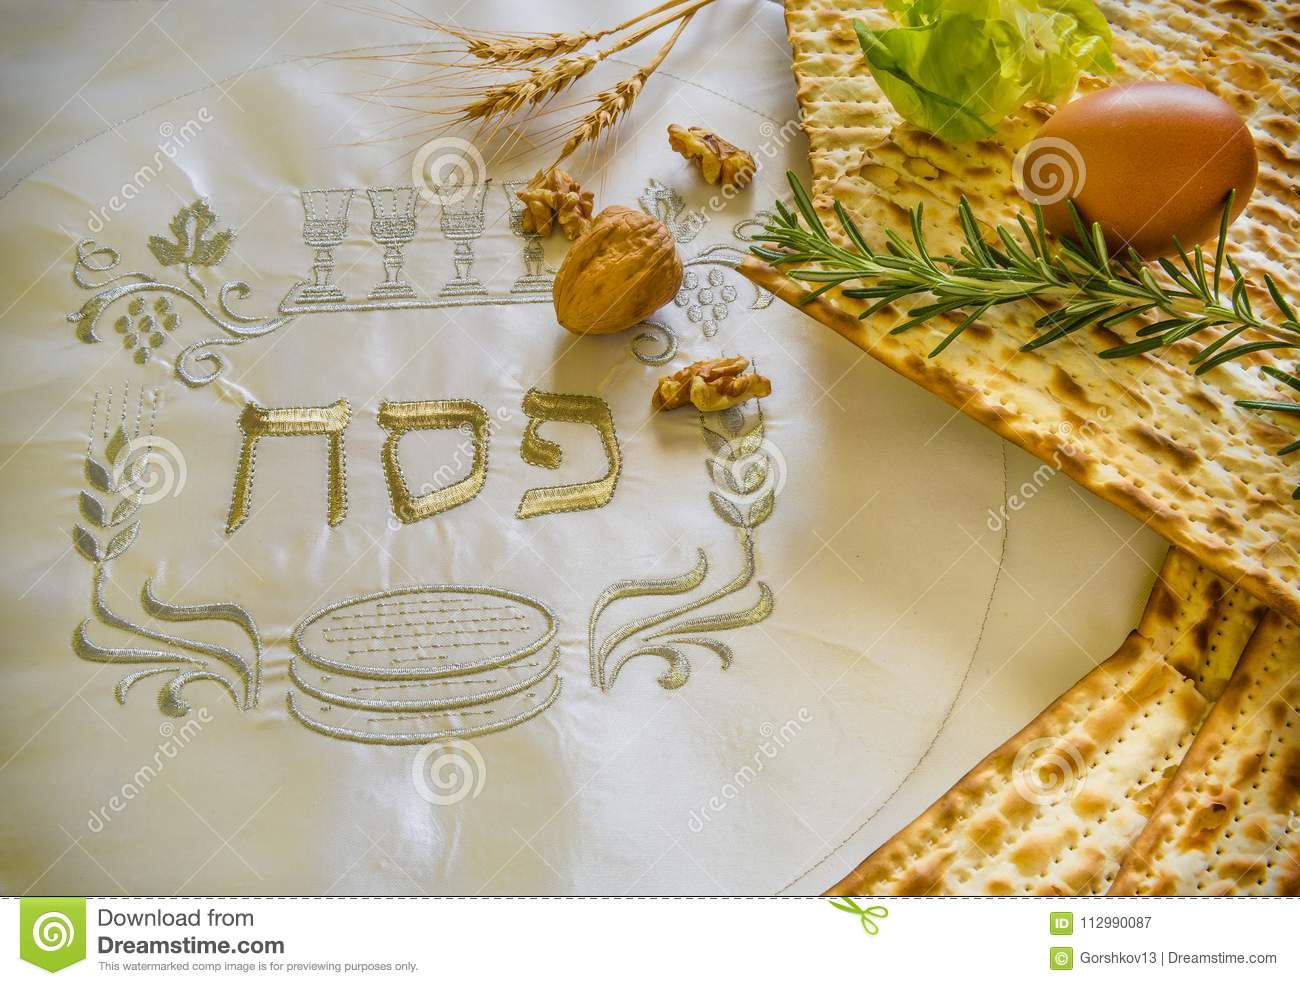 Traditional Jewish food and drink for Jewish Passover - Pesach holiday